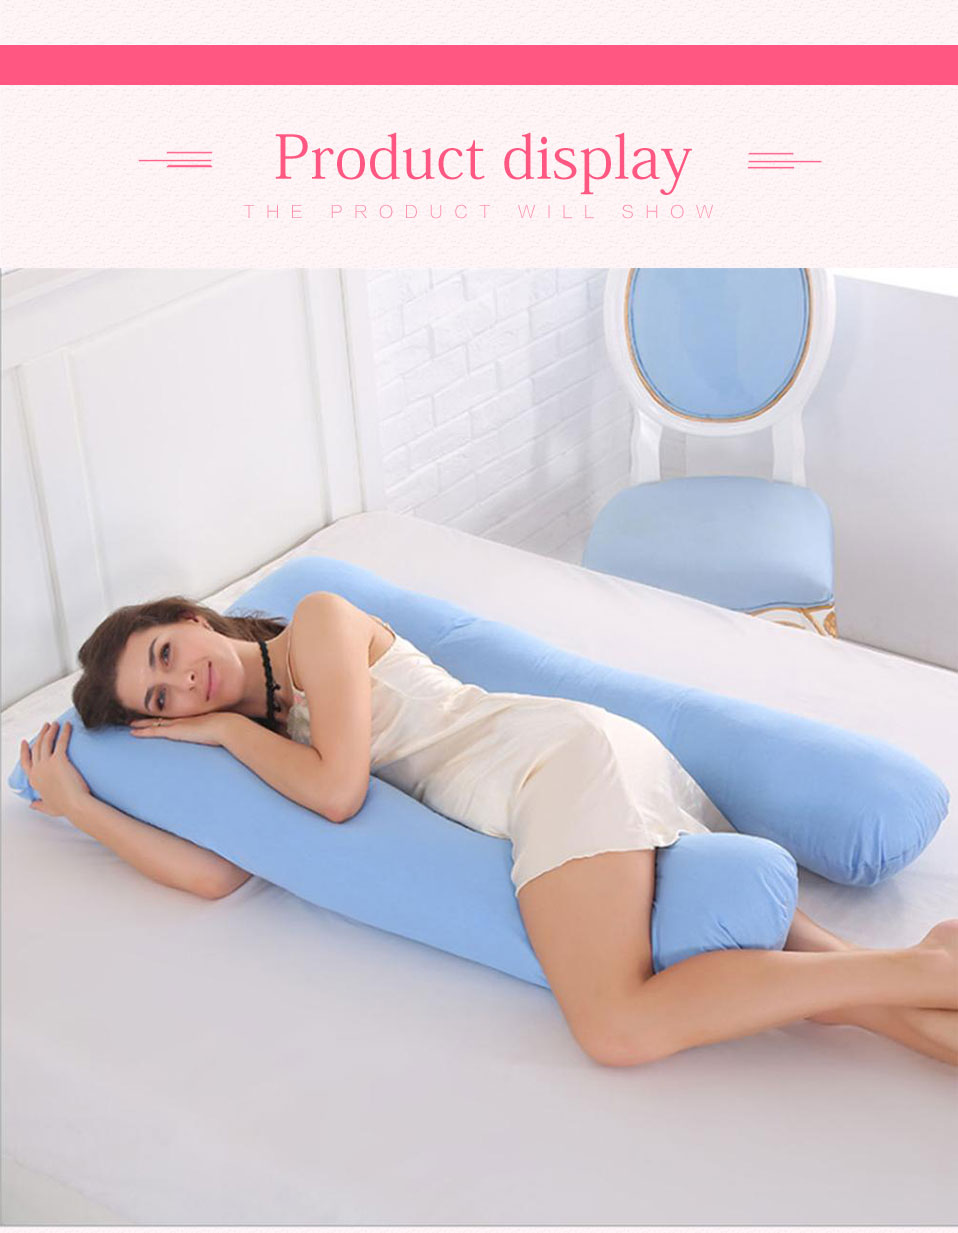 Sleeping Support Pillow For Pregnant Women Body 100% Cotton Pillowcase U Shape Maternity Pillows Pregnancy Side Sleepers Bedding (14)